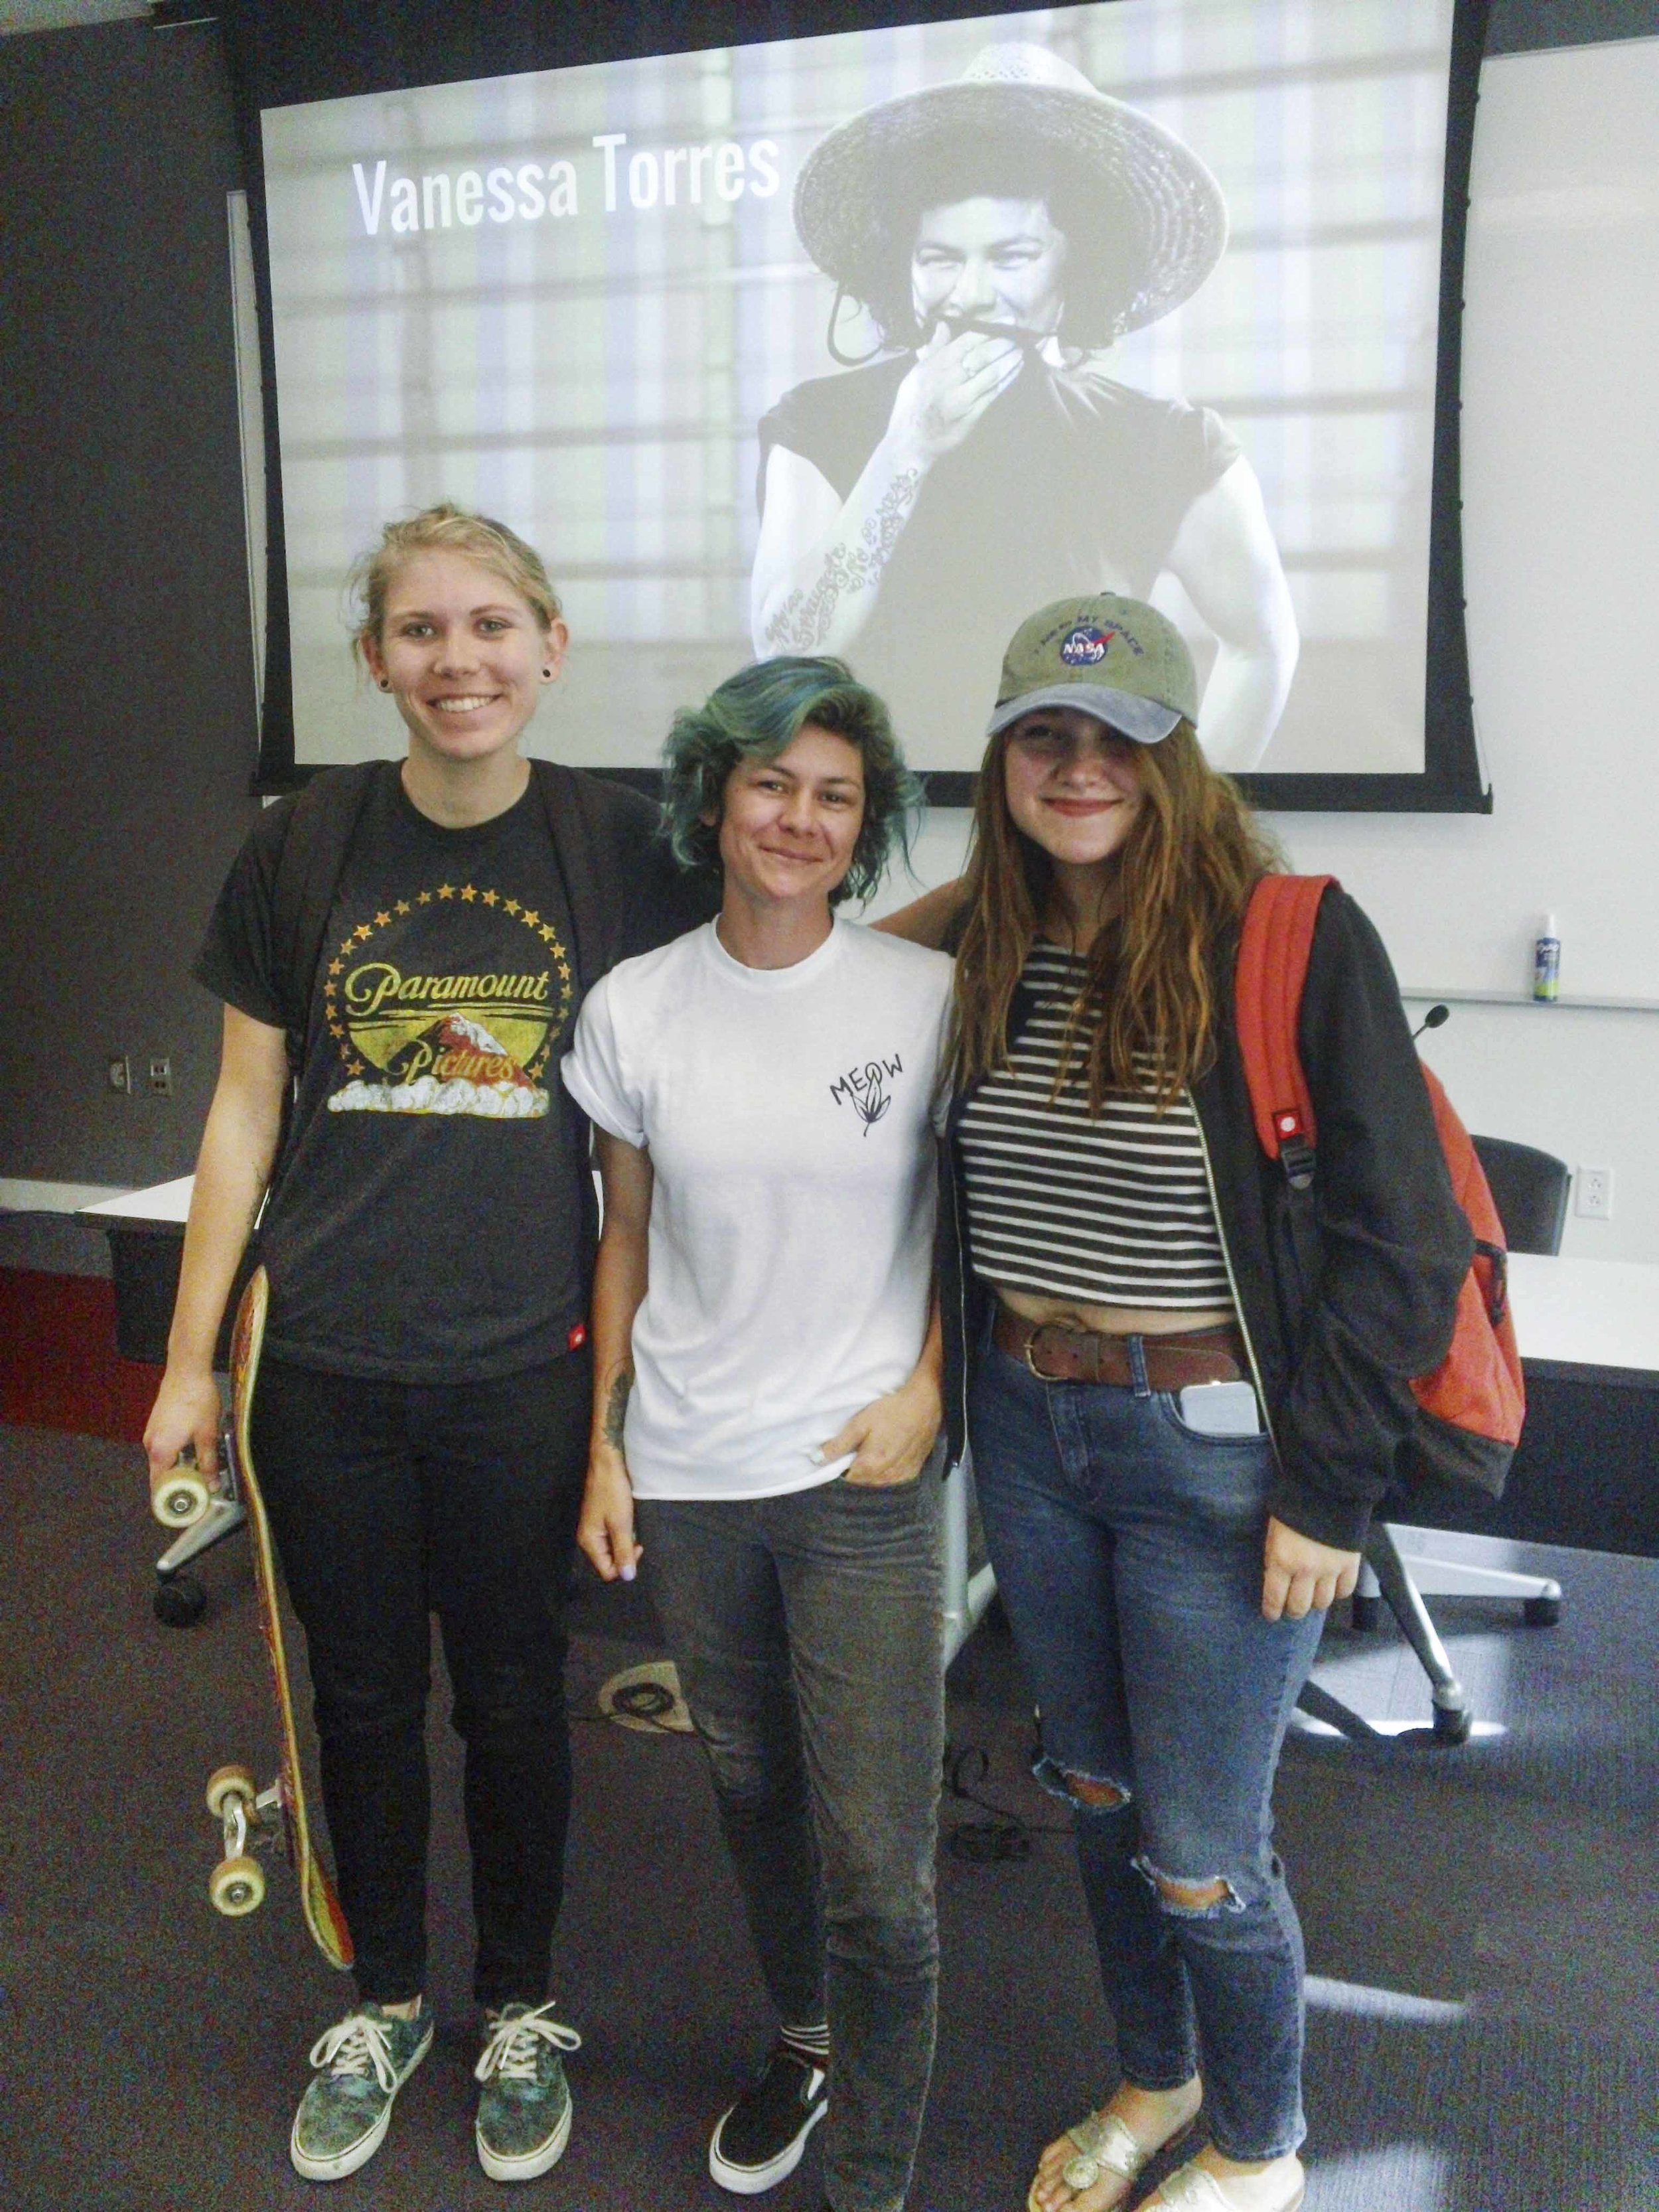 Vanessa Torres with USC's ASCJ 420 Skateboarding and Action-Sports Student Hannah Bowers and Chairman of the Board and alum, Megan Webster.